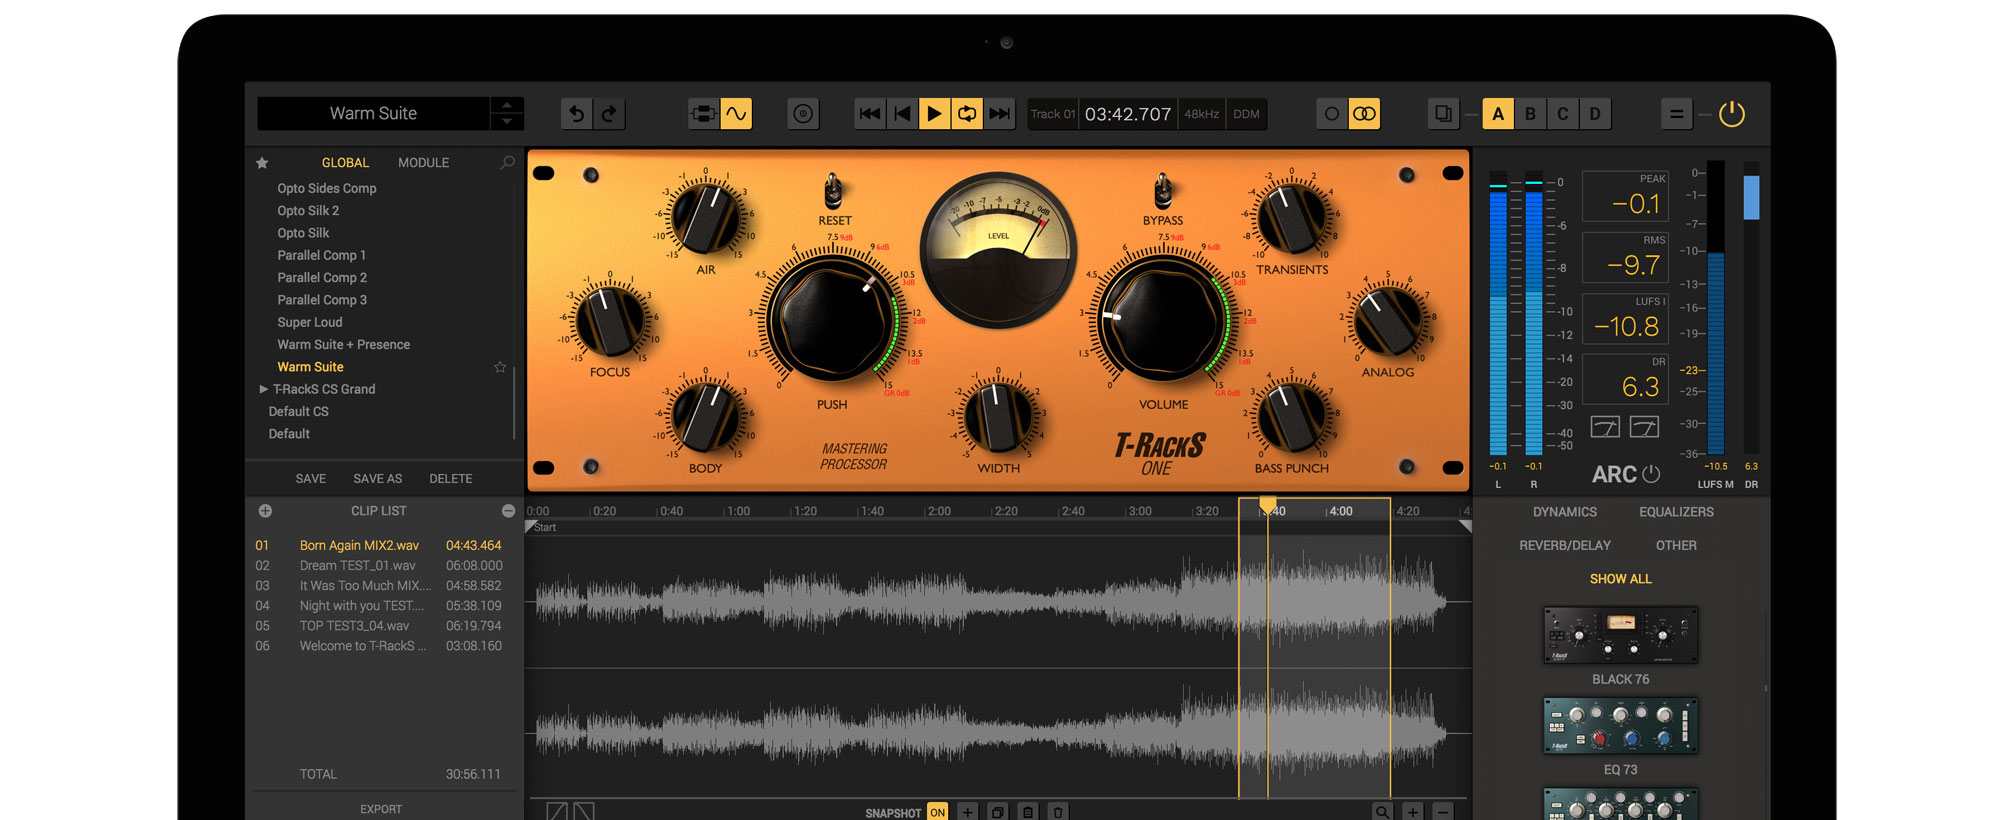 Ik Multimedia One Audio Enhancement For Analog Amplifier It Includes An Eq Compressor Harmonic Exciter Low End Enhancer And Limiter That Will Let Anyone Achieve Professional Quality Results Quickly Easily